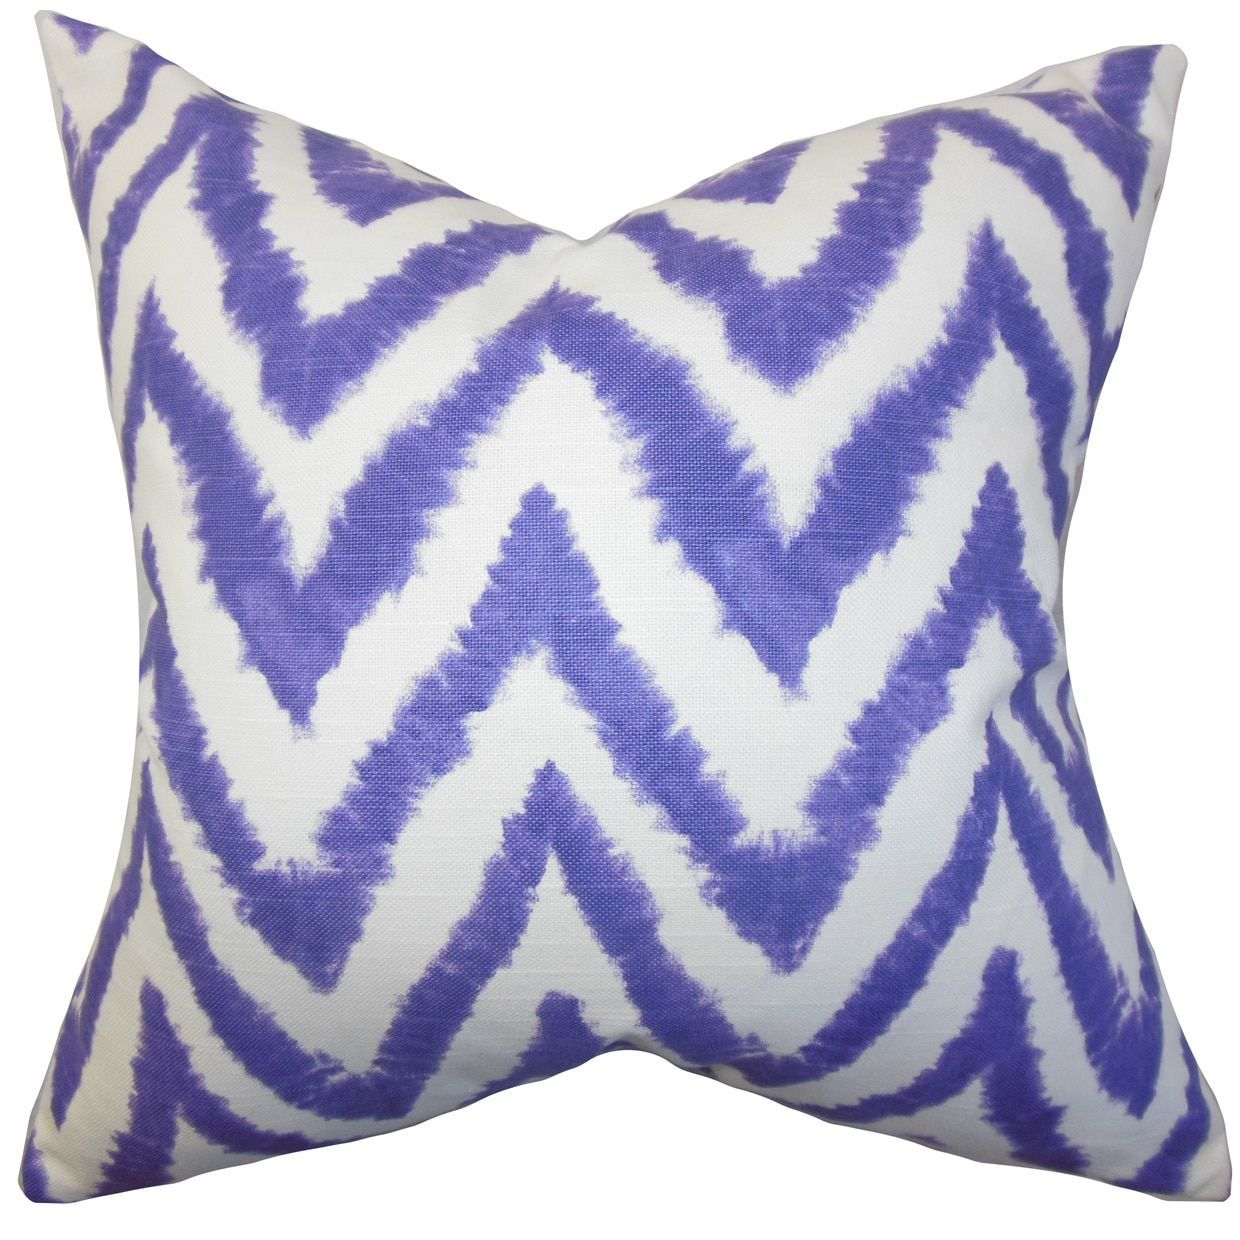 Kingspear Zigzag 24-inch Down Feather Throw Pillow Purple (24\